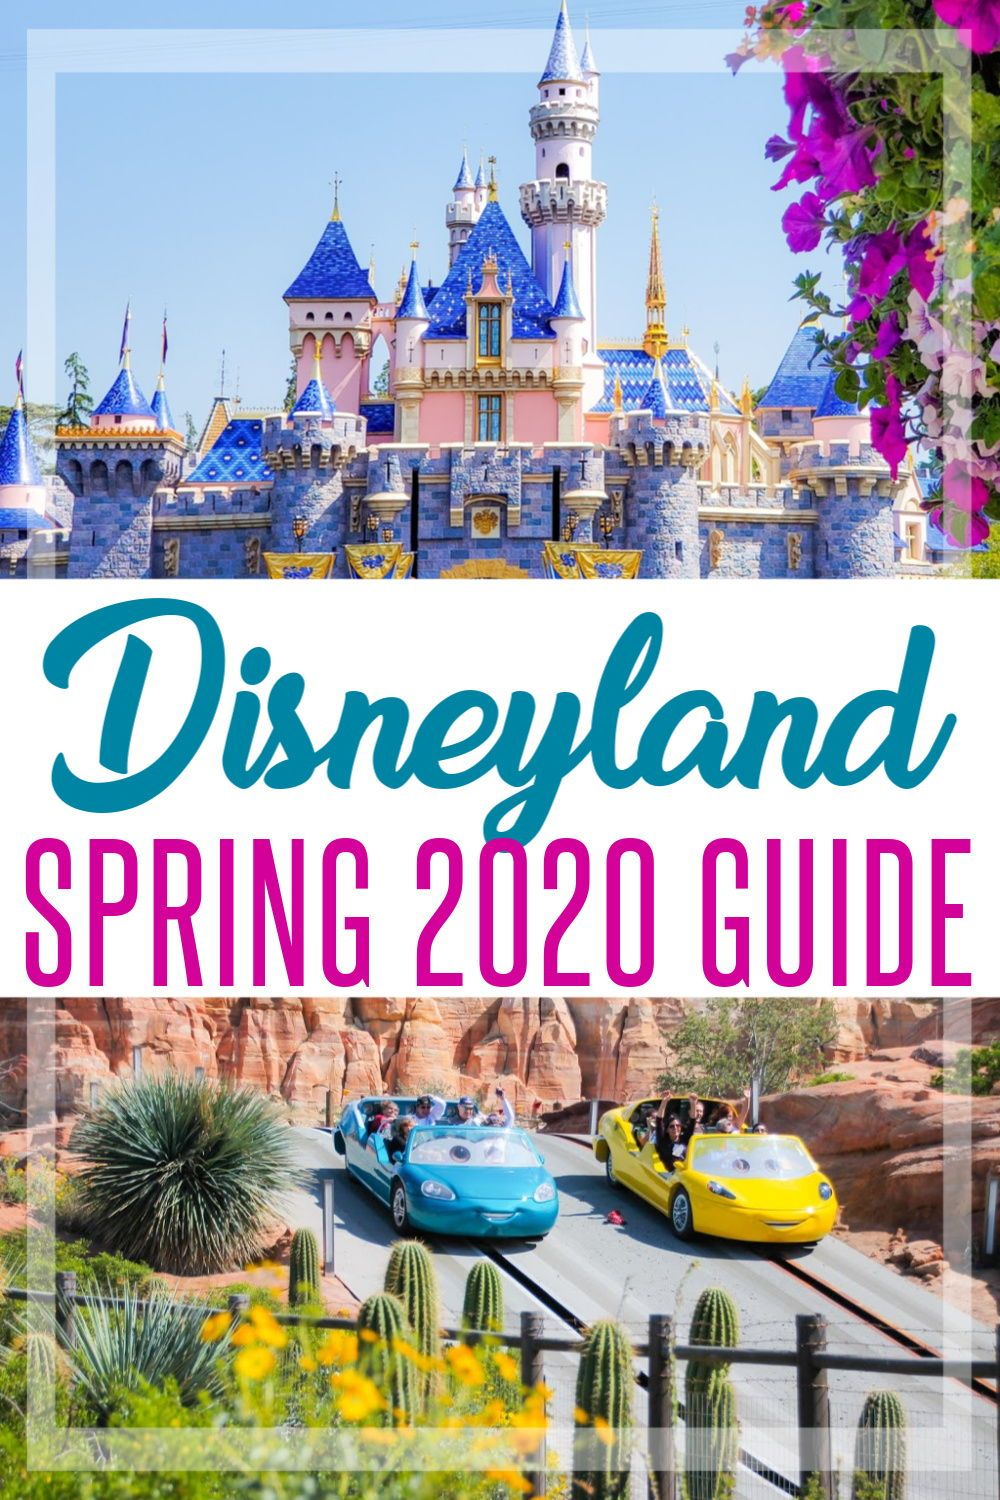 Tips for Spring Break at Disneyland in 2020 #disneylandfood